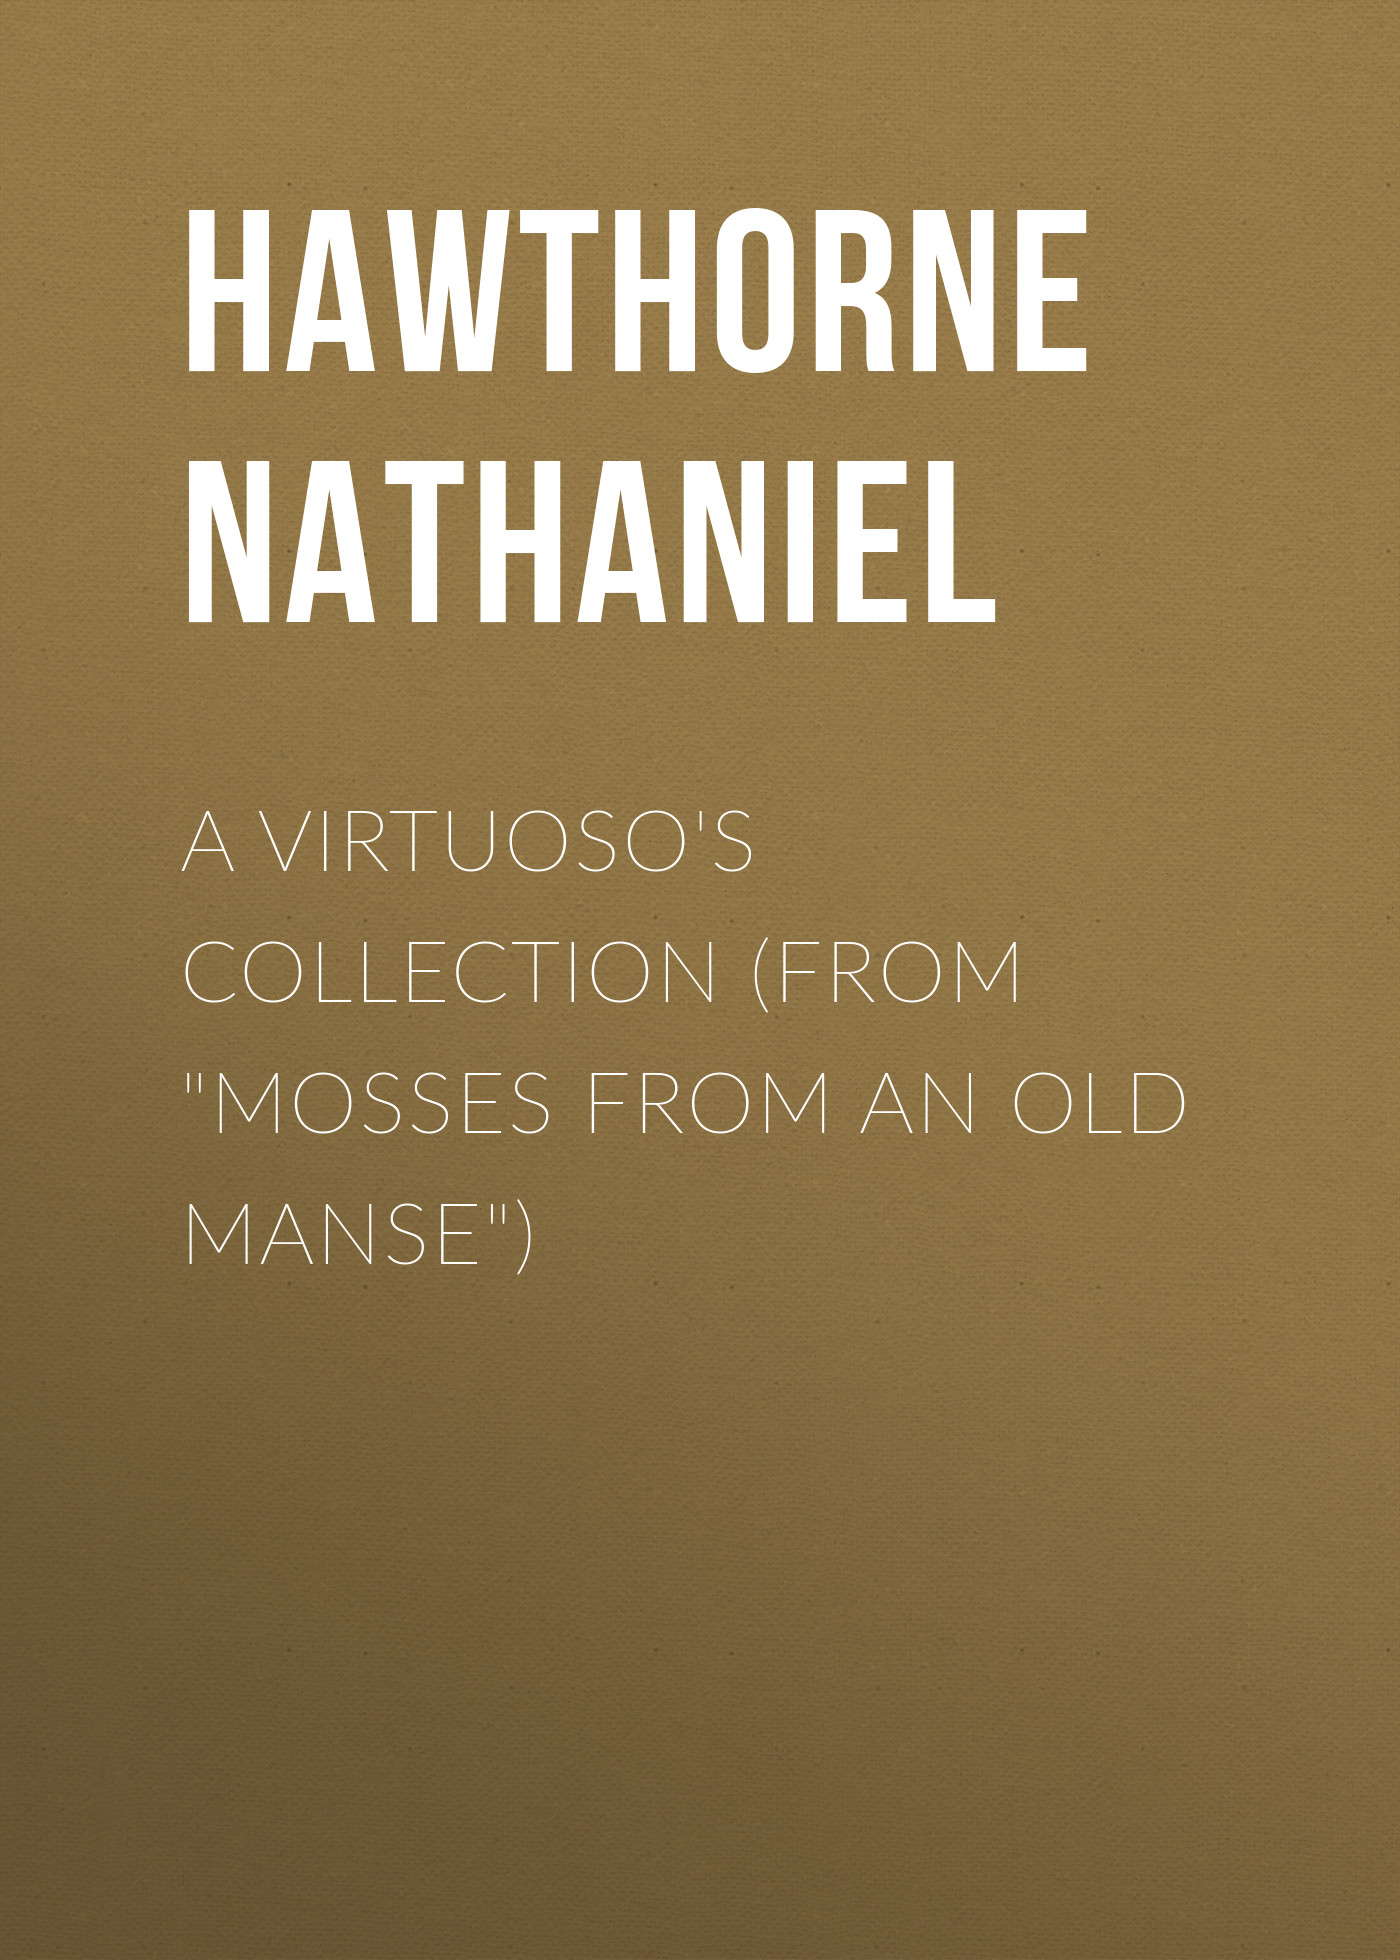 Hawthorne Nathaniel A Virtuoso's Collection (From Mosses from an Old Manse) hawthorne nathaniel the hall of fantasy from mosses from an old manse